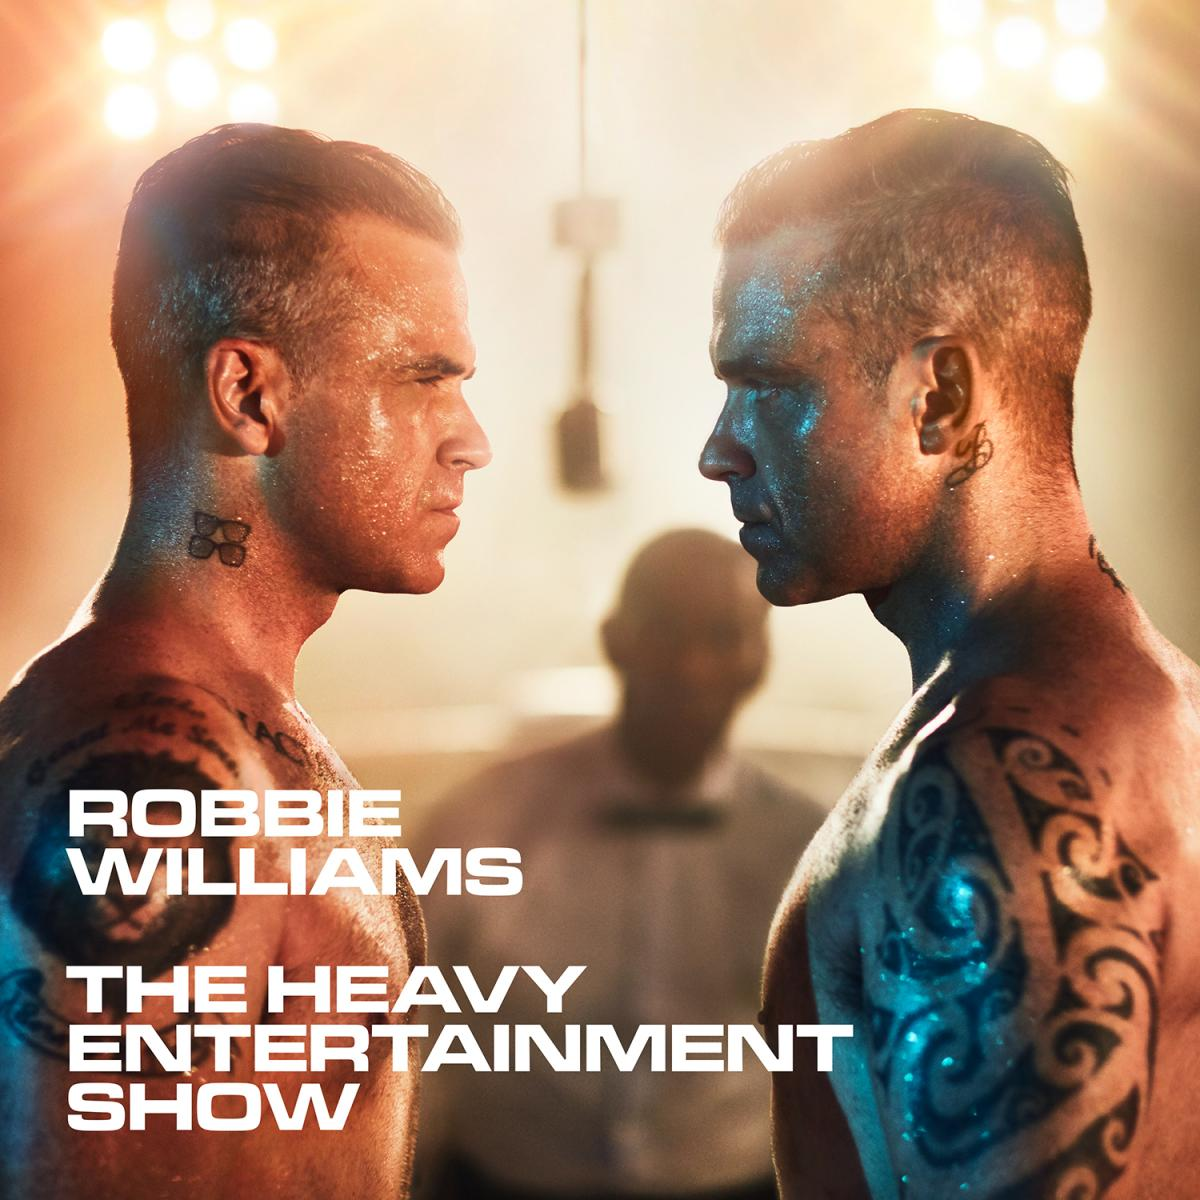 robbie-williams-the-heavy-entertainment-show-album-cover-columbia-records